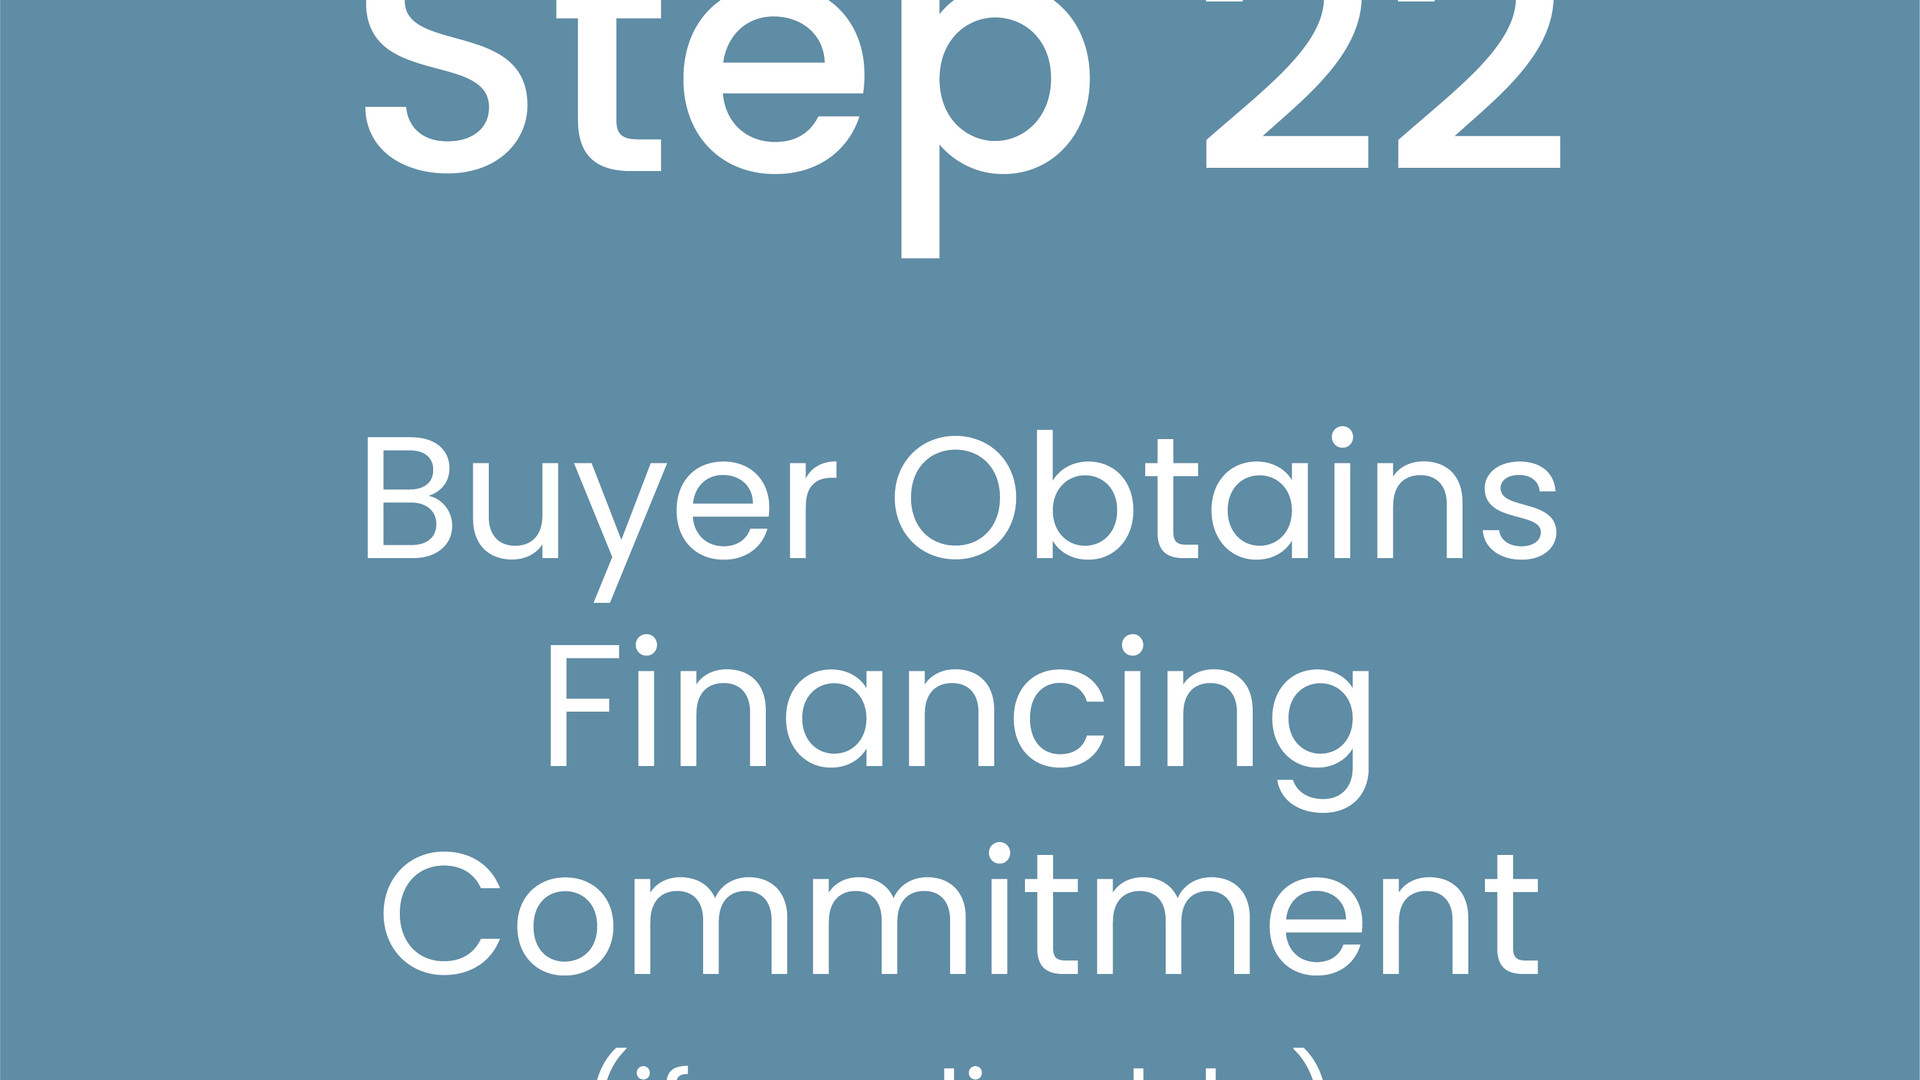 Step 22: Buyer Optains Financing Commitment (if applicable)